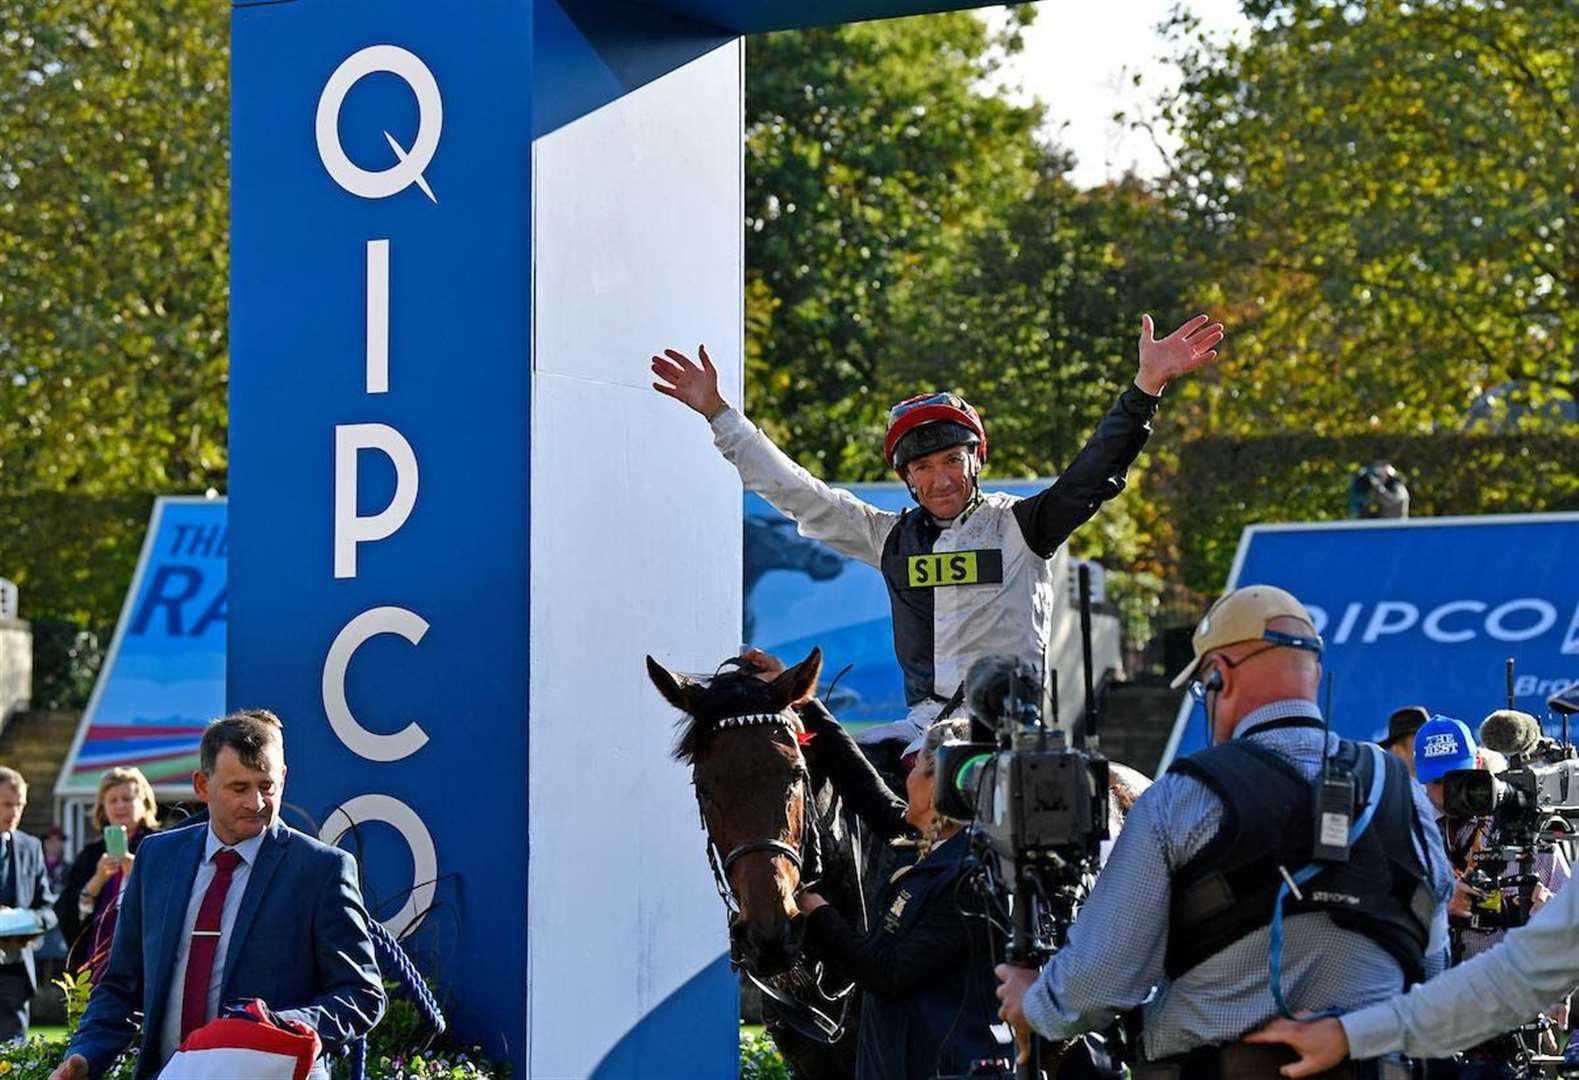 Dettori clinches a landmark Group 1 win on Star Catcher